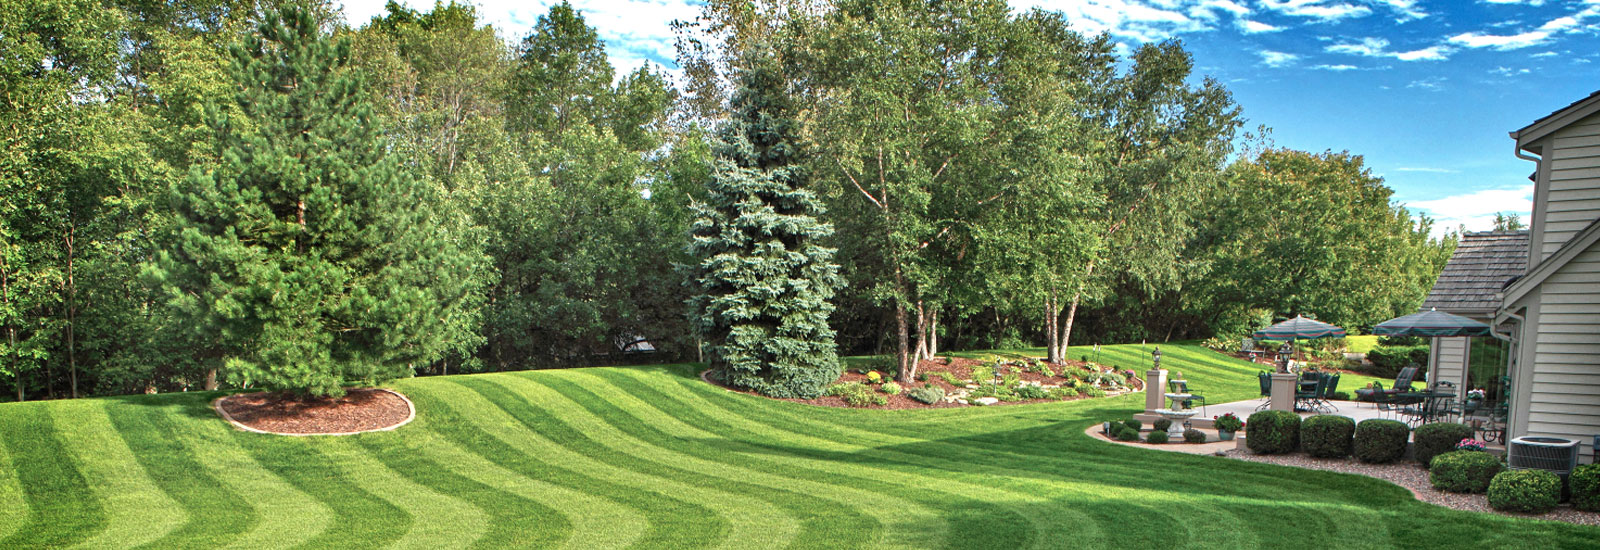 lawn maintenance fertilization bucks